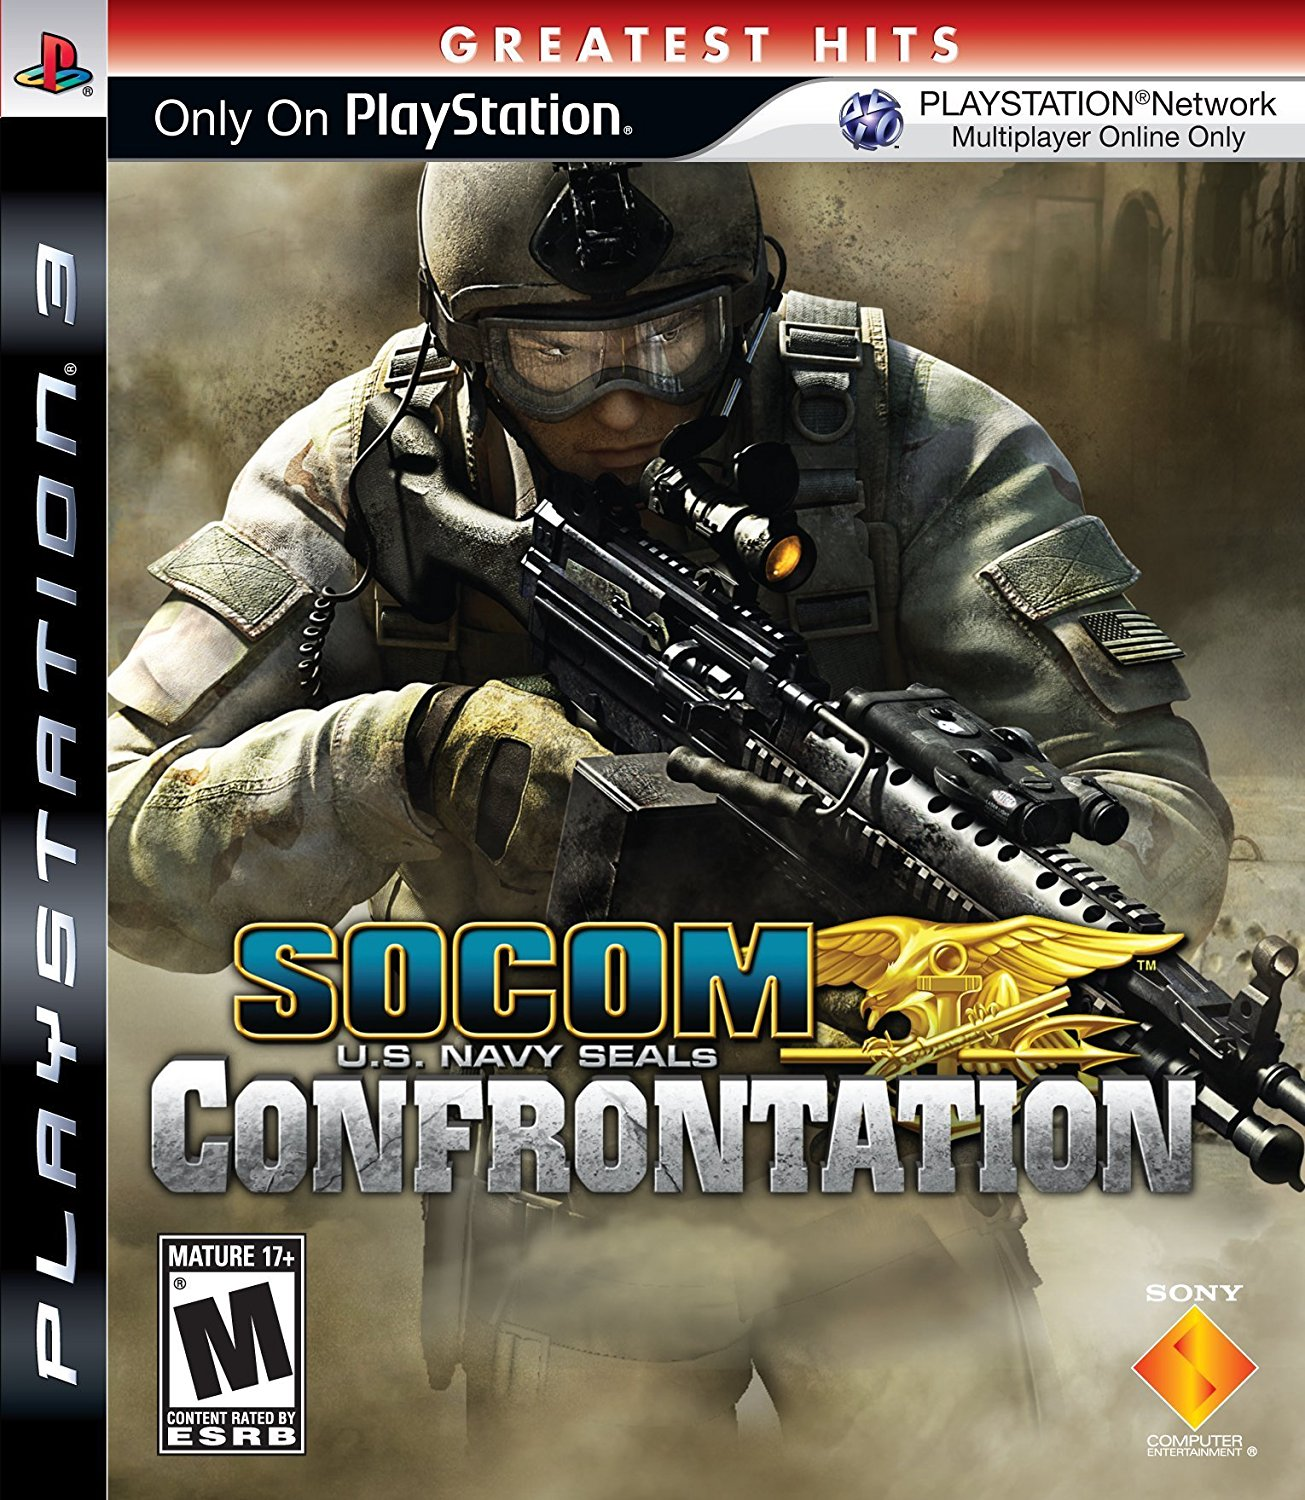 Replacement Case (NO GAME) SOCOM 4 U.S. NAVY SEALS PLAYSTATION 3 ...